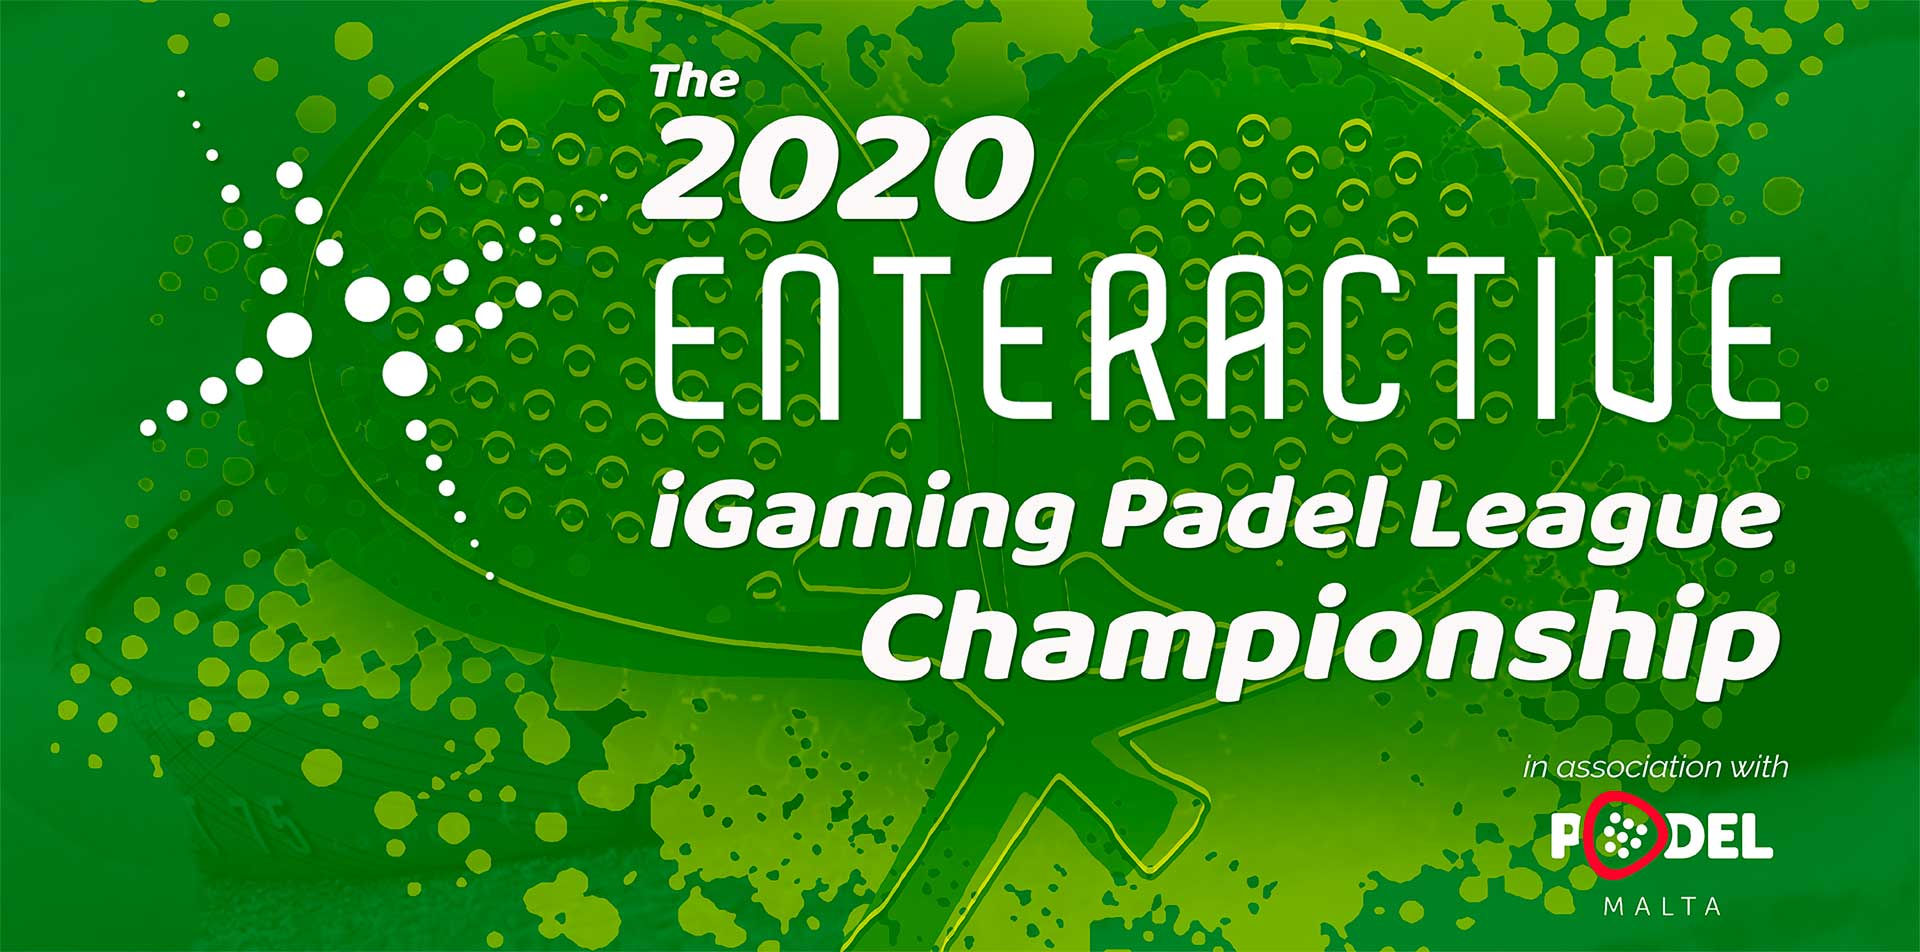 iGaming Padel League